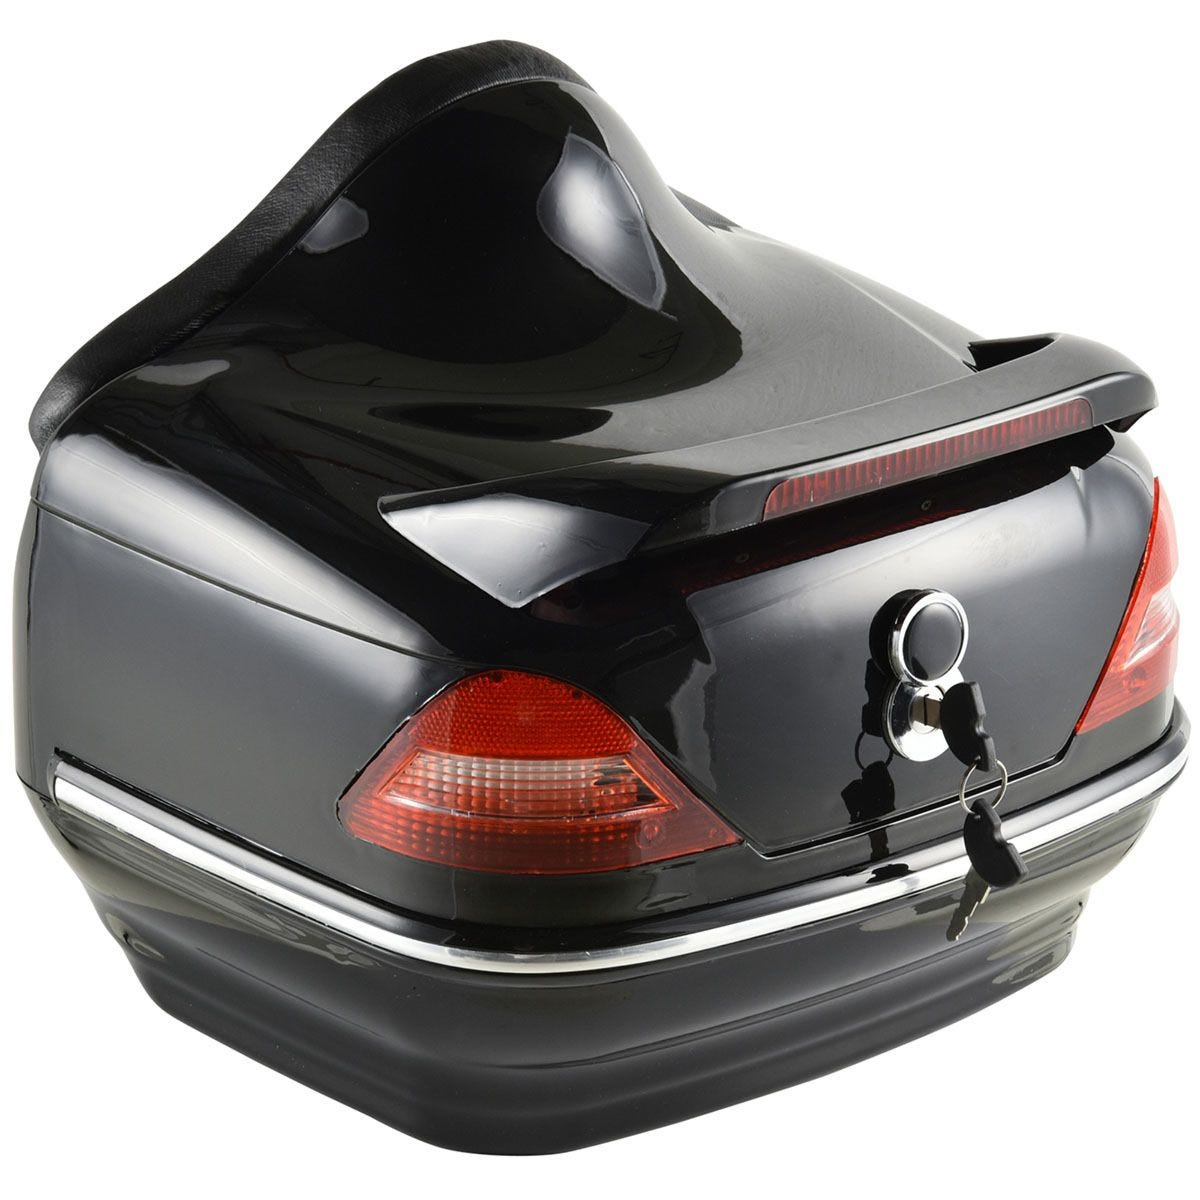 HOMCOM 26L Streamline Plastic Motorcycle Trunk with Reflector - Red & Black